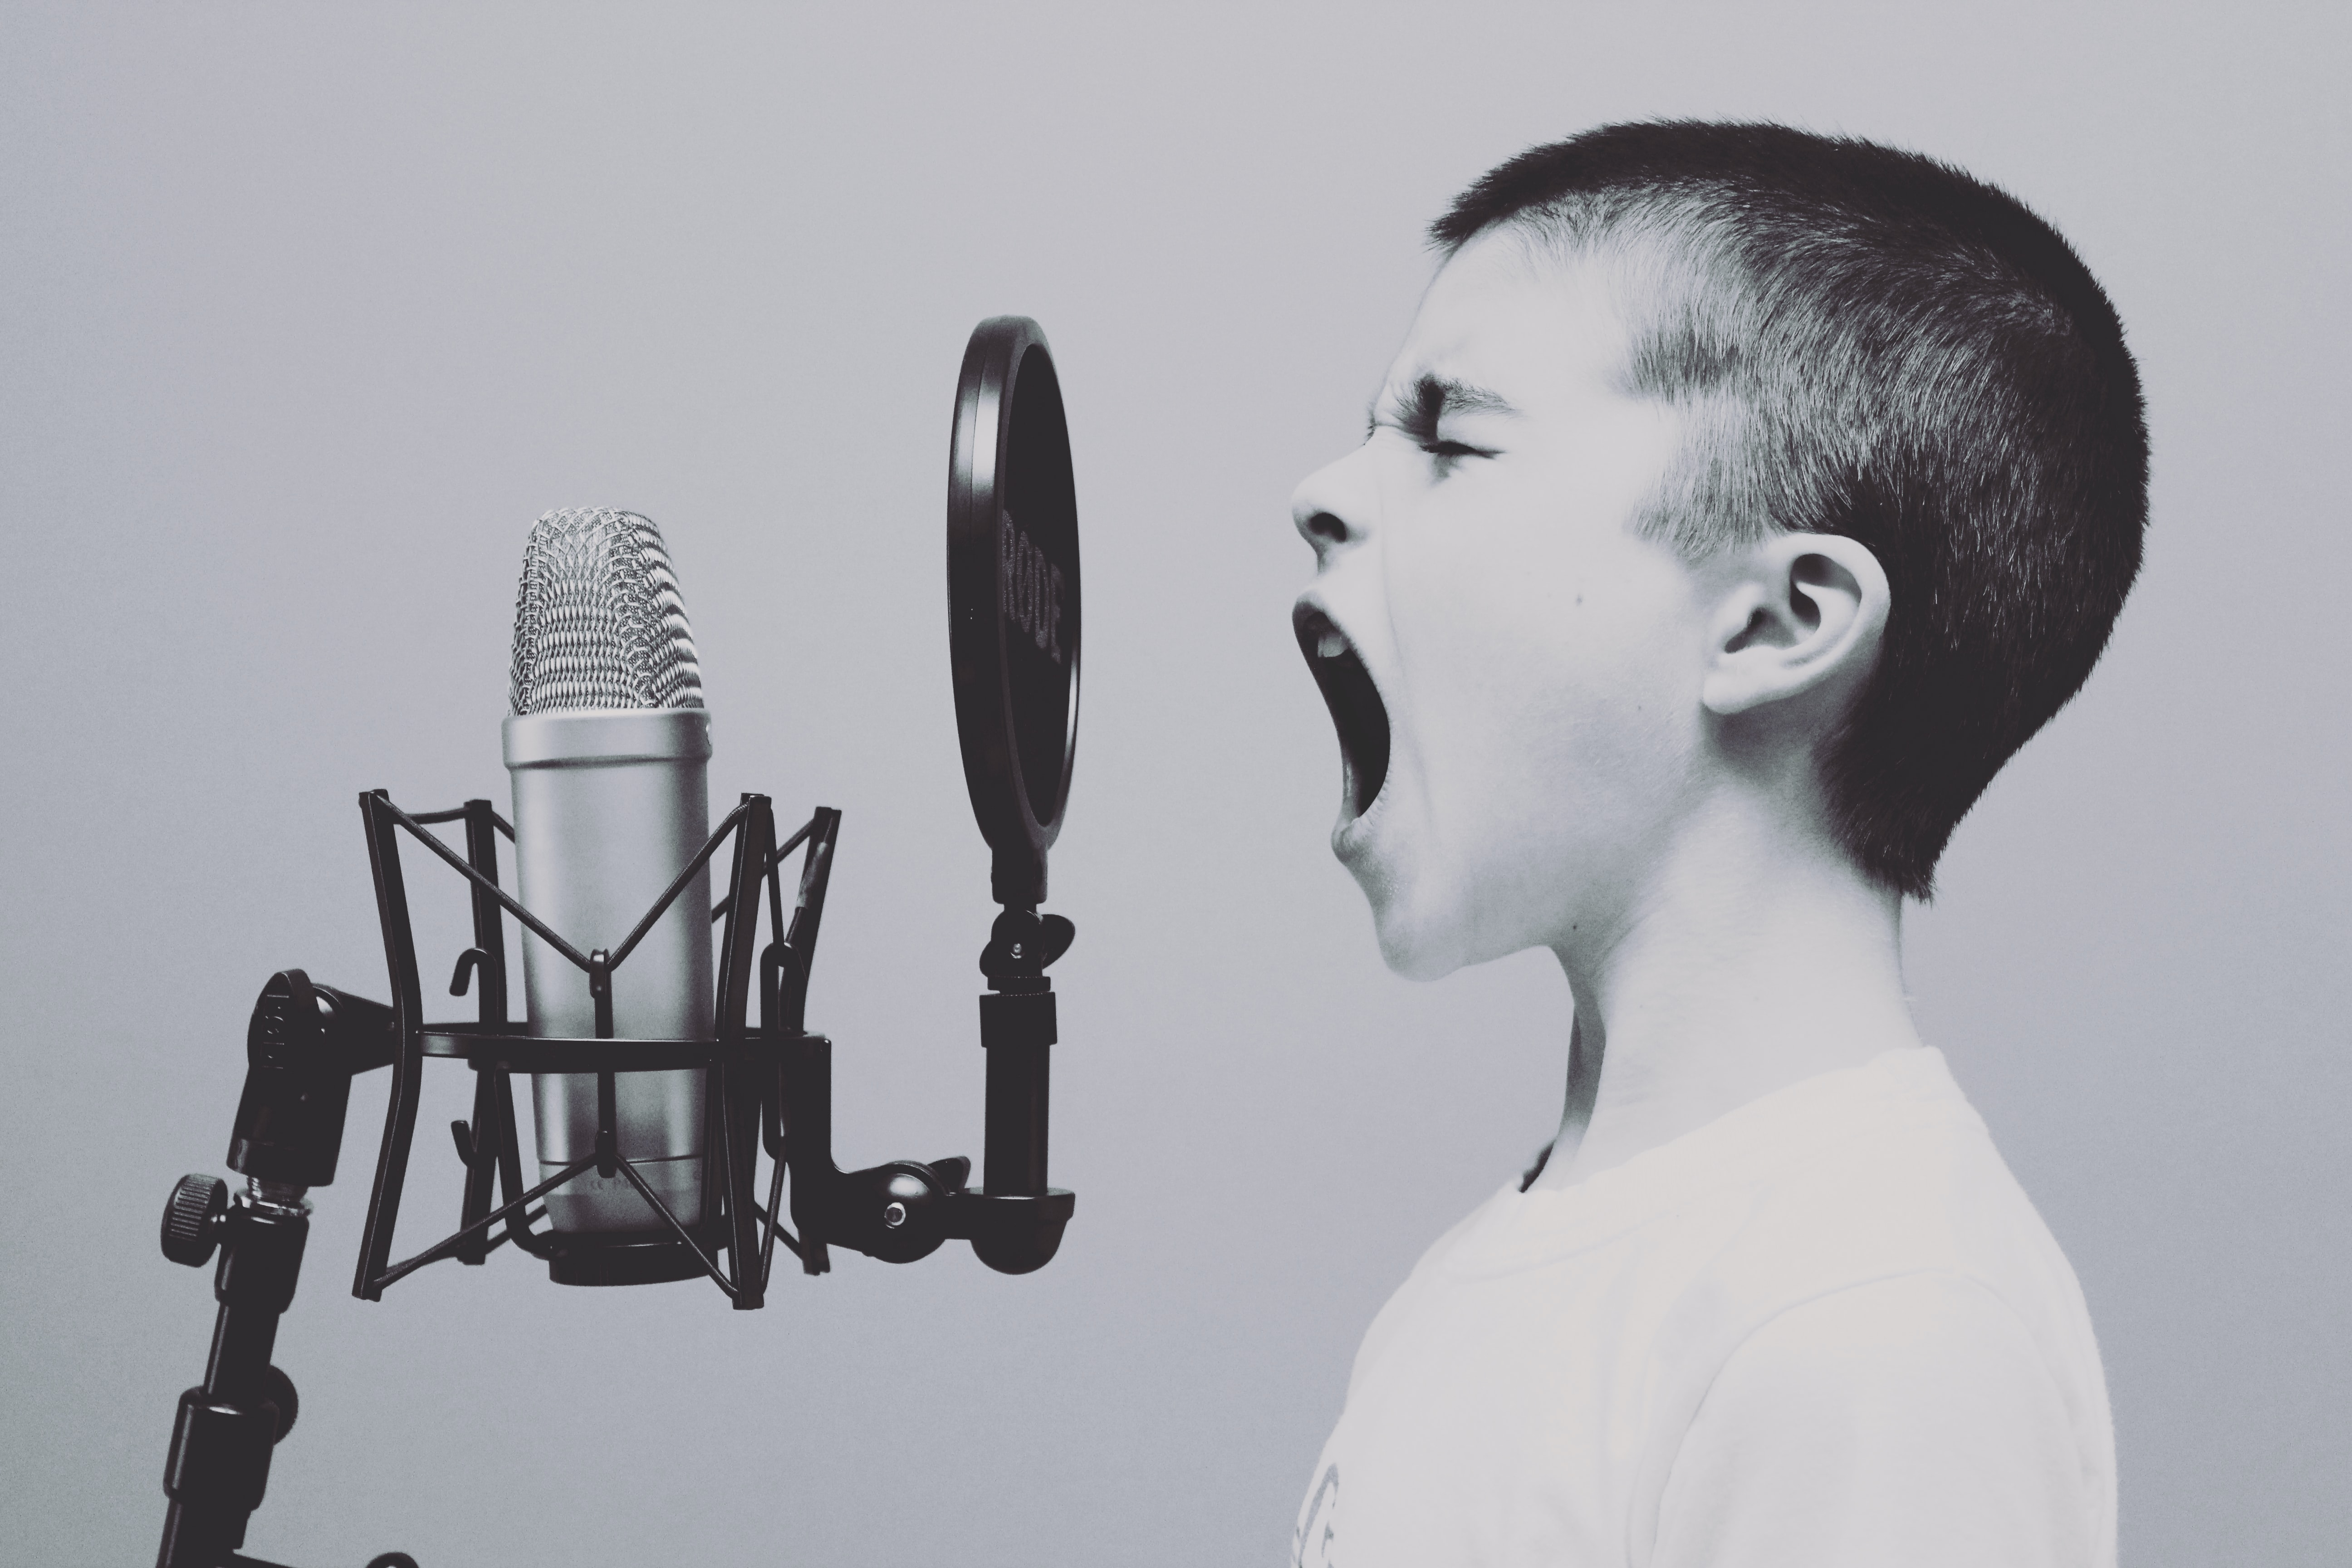 A young person shouts or sings into an old style microphone (Image credit: Jason Rosewell via Unsplash)